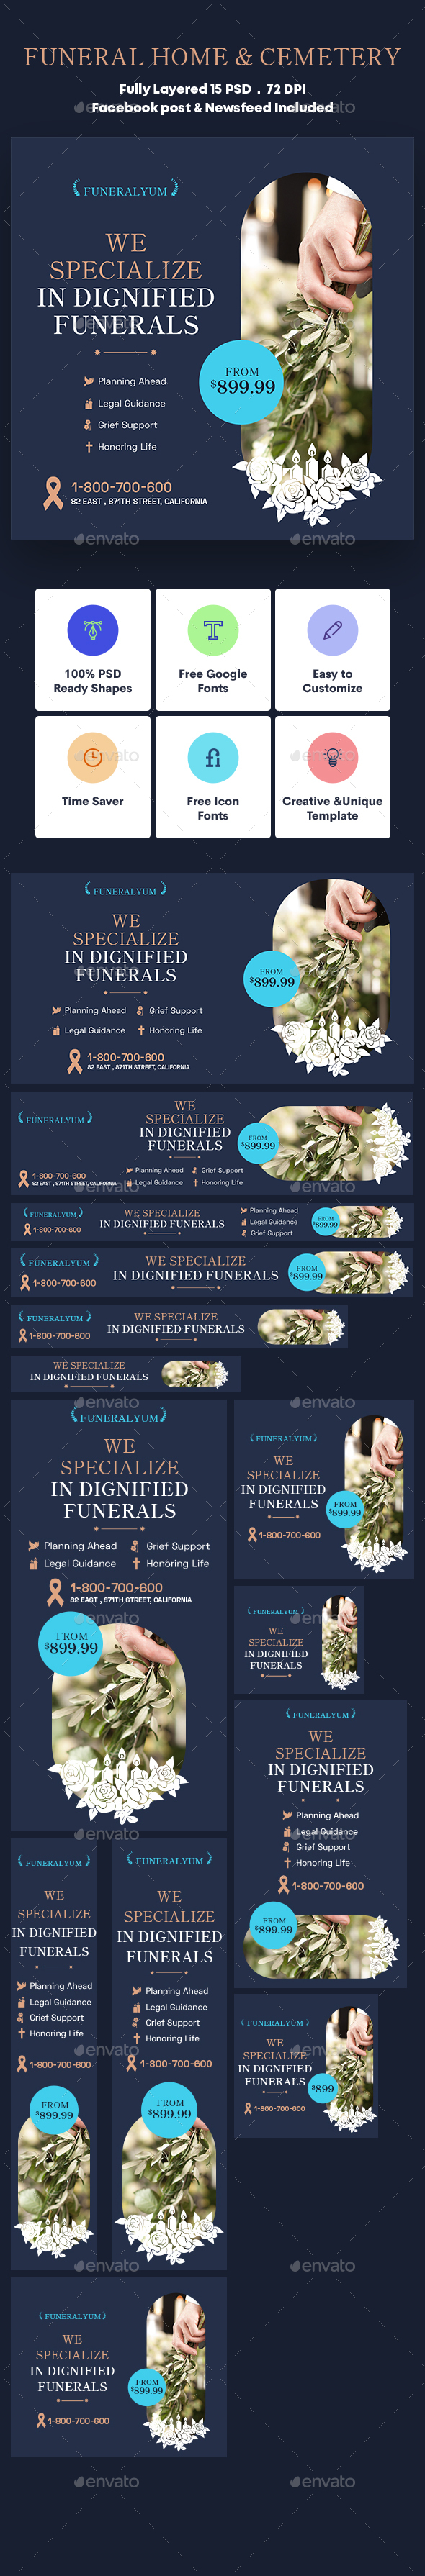 Funeral Home & Cemetery Banners Ad